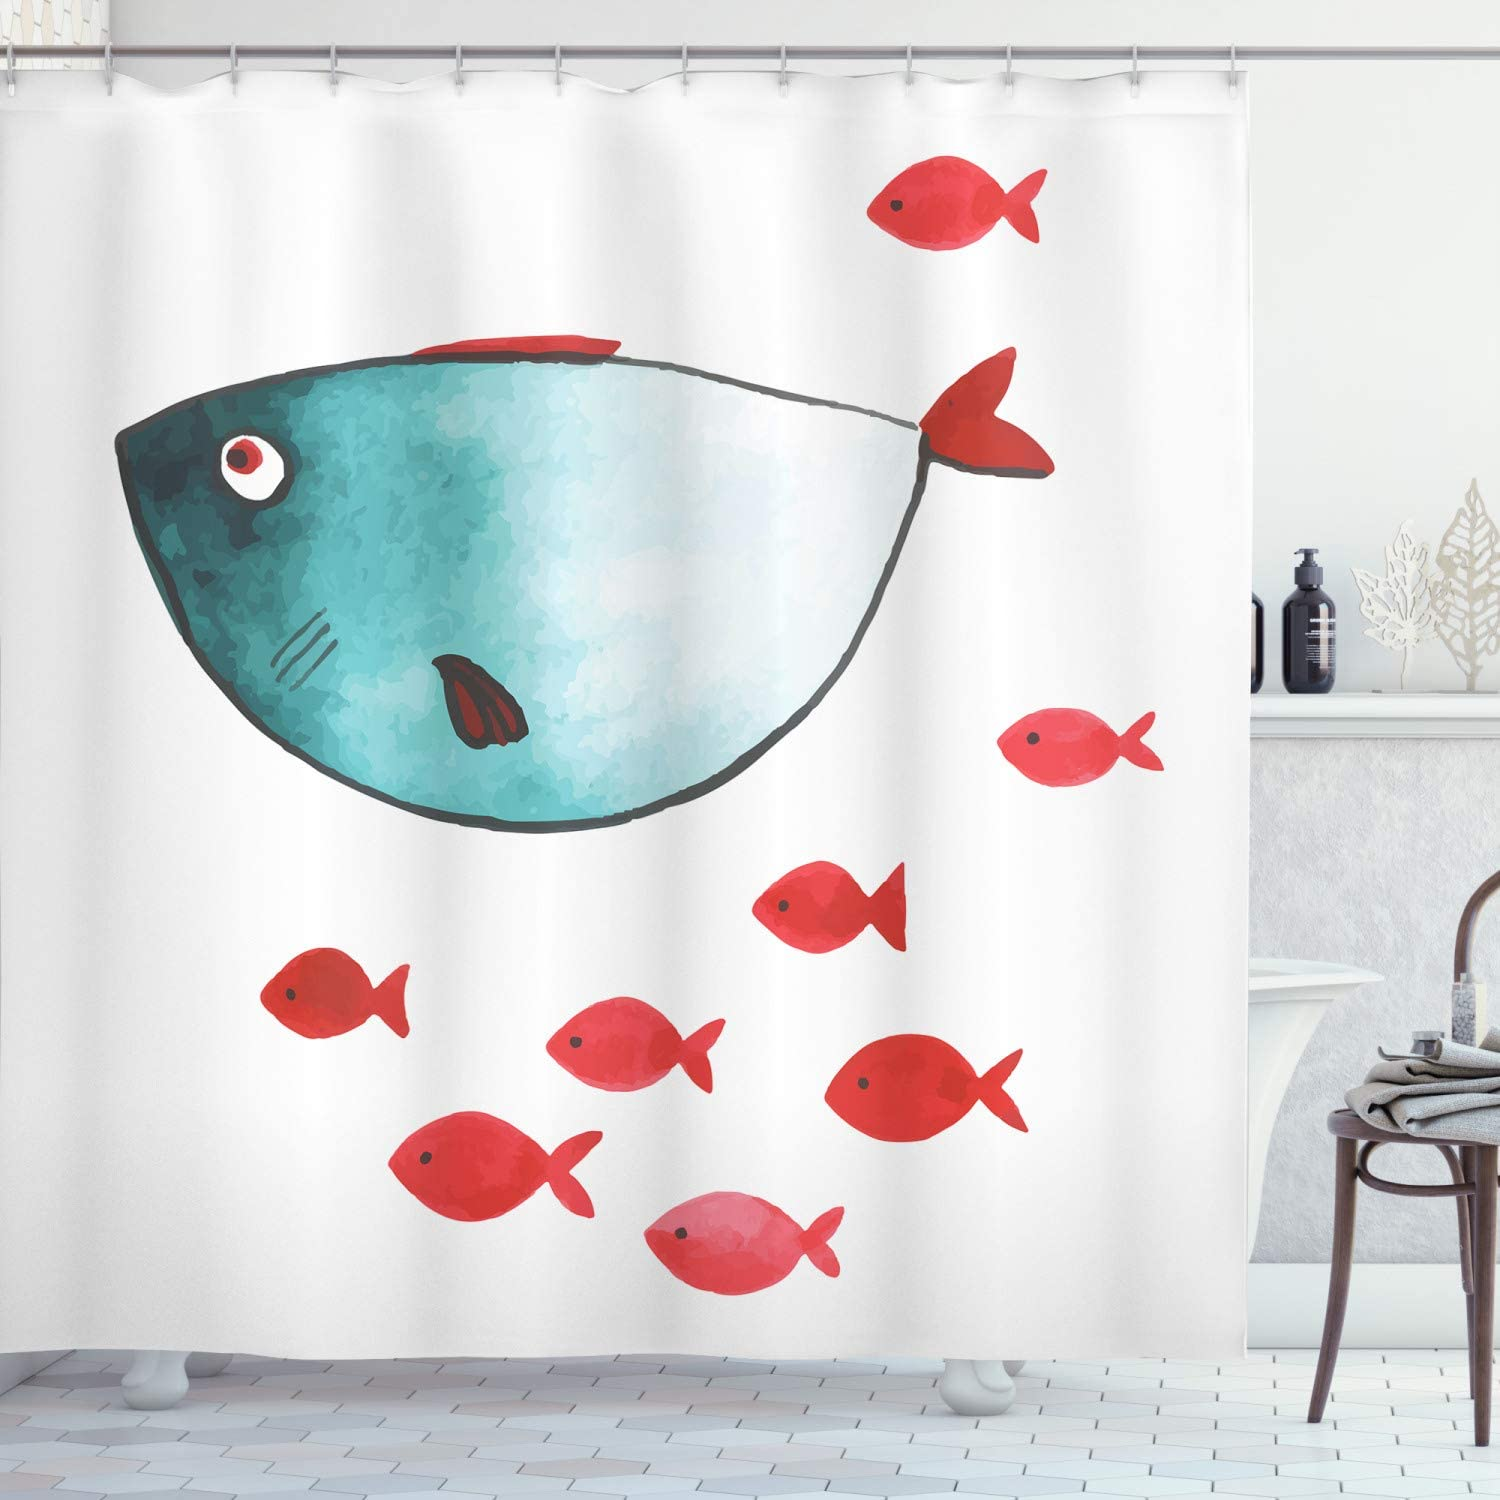 Amazon Com Ambesonne Nursery Shower Curtain Fish With Little Underwater Aquatic Life Kids Girls Boys Nursery Theme Cloth Fabric Bathroom Decor Set With Hooks 70 Long Vermilion Teal Home Kitchen